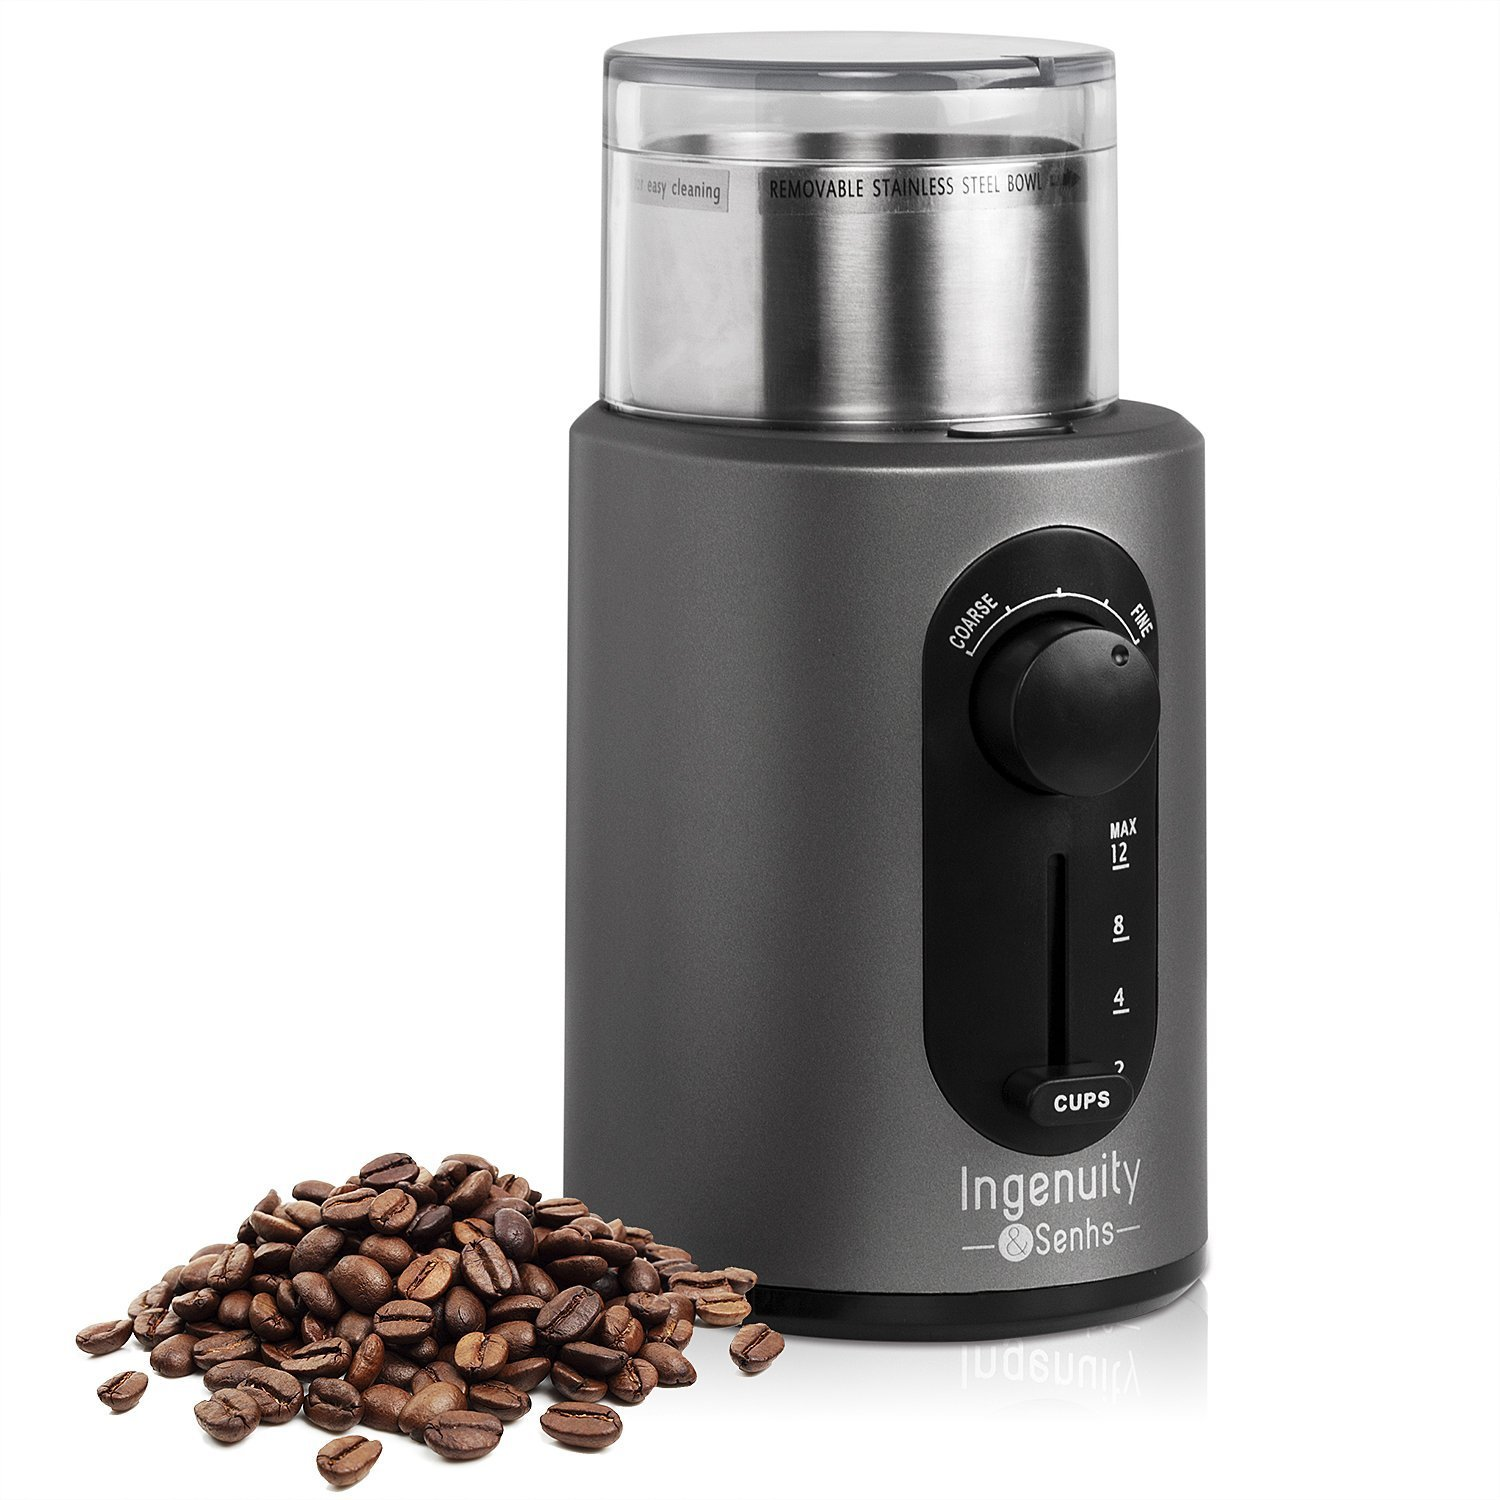 Electric Coffee Grinder Multifunction Spice Grinder with Stainless Steel Blades and Removable Cup, 12 Cups, 200 Watt, 110V by Senhs